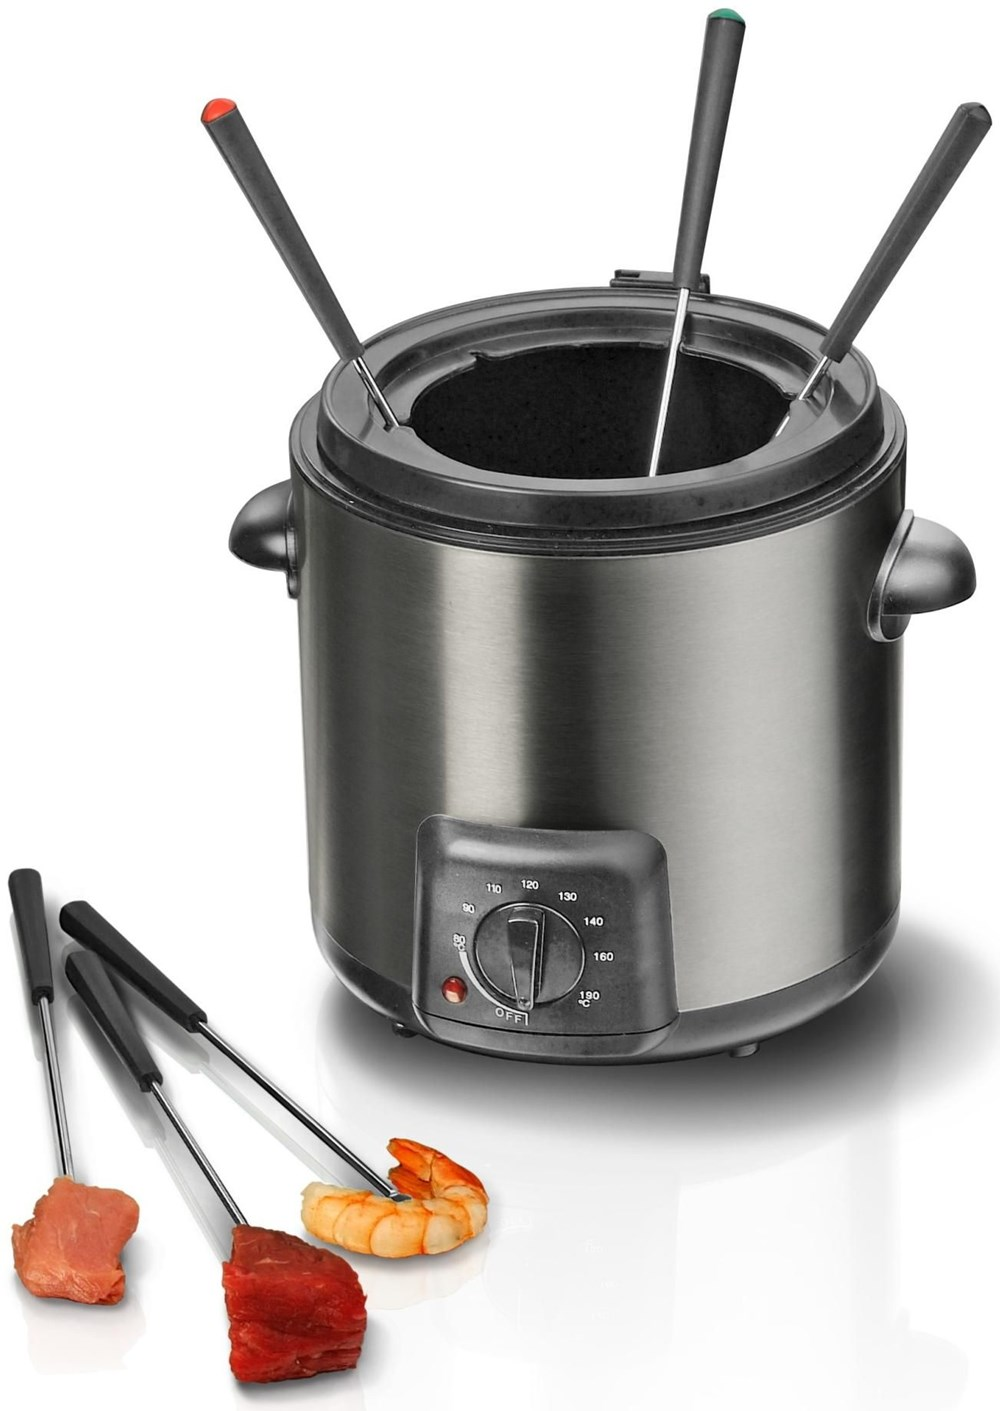 steba df 90 fritteuse fondue set edelstahl schwarz deep fryers computeruniverse. Black Bedroom Furniture Sets. Home Design Ideas